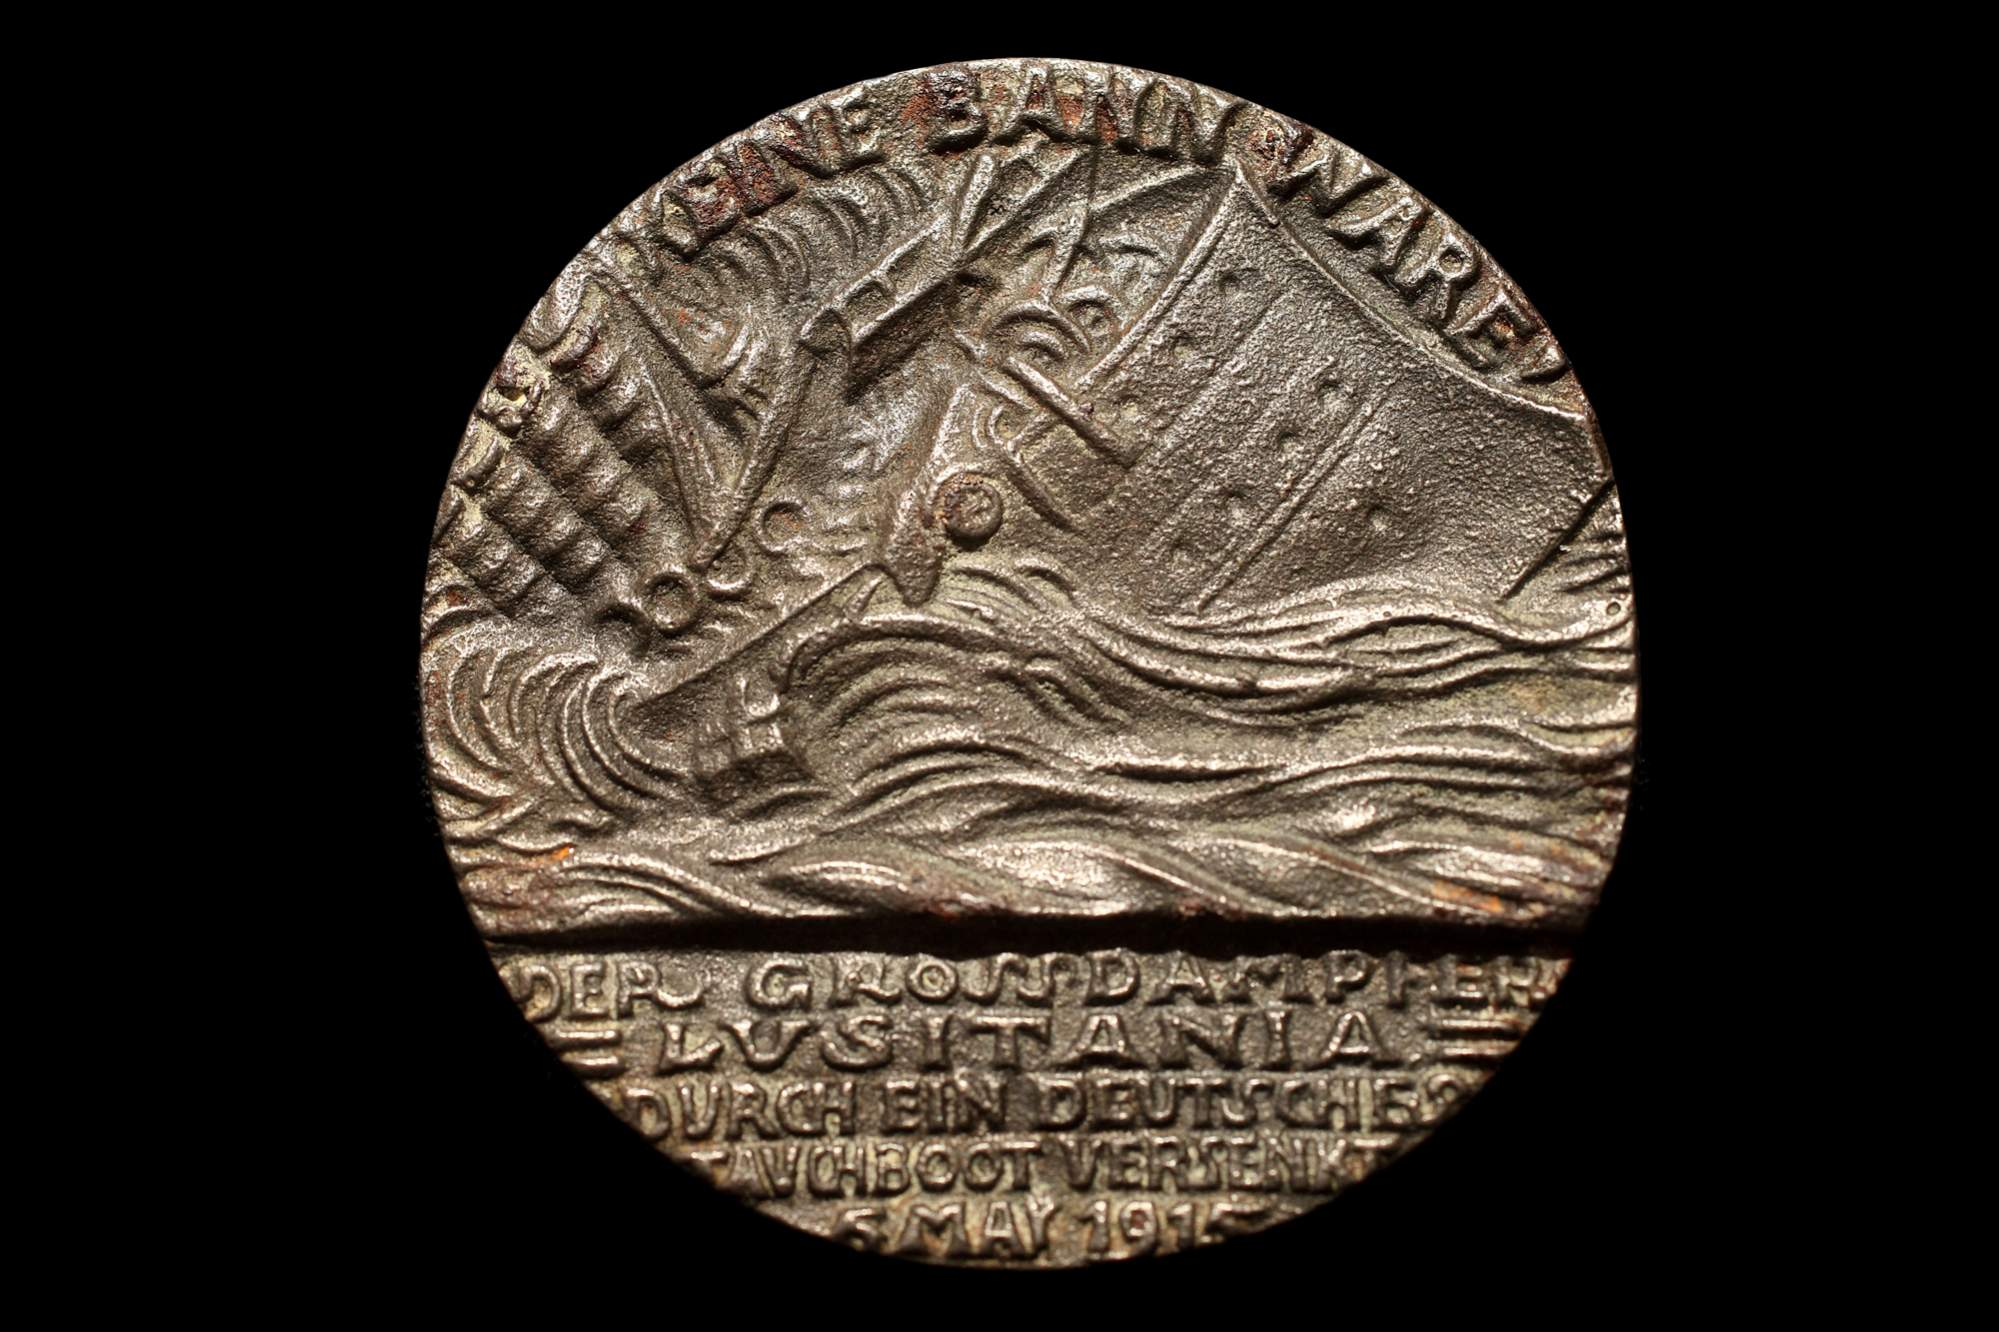 The obverse of the British medal